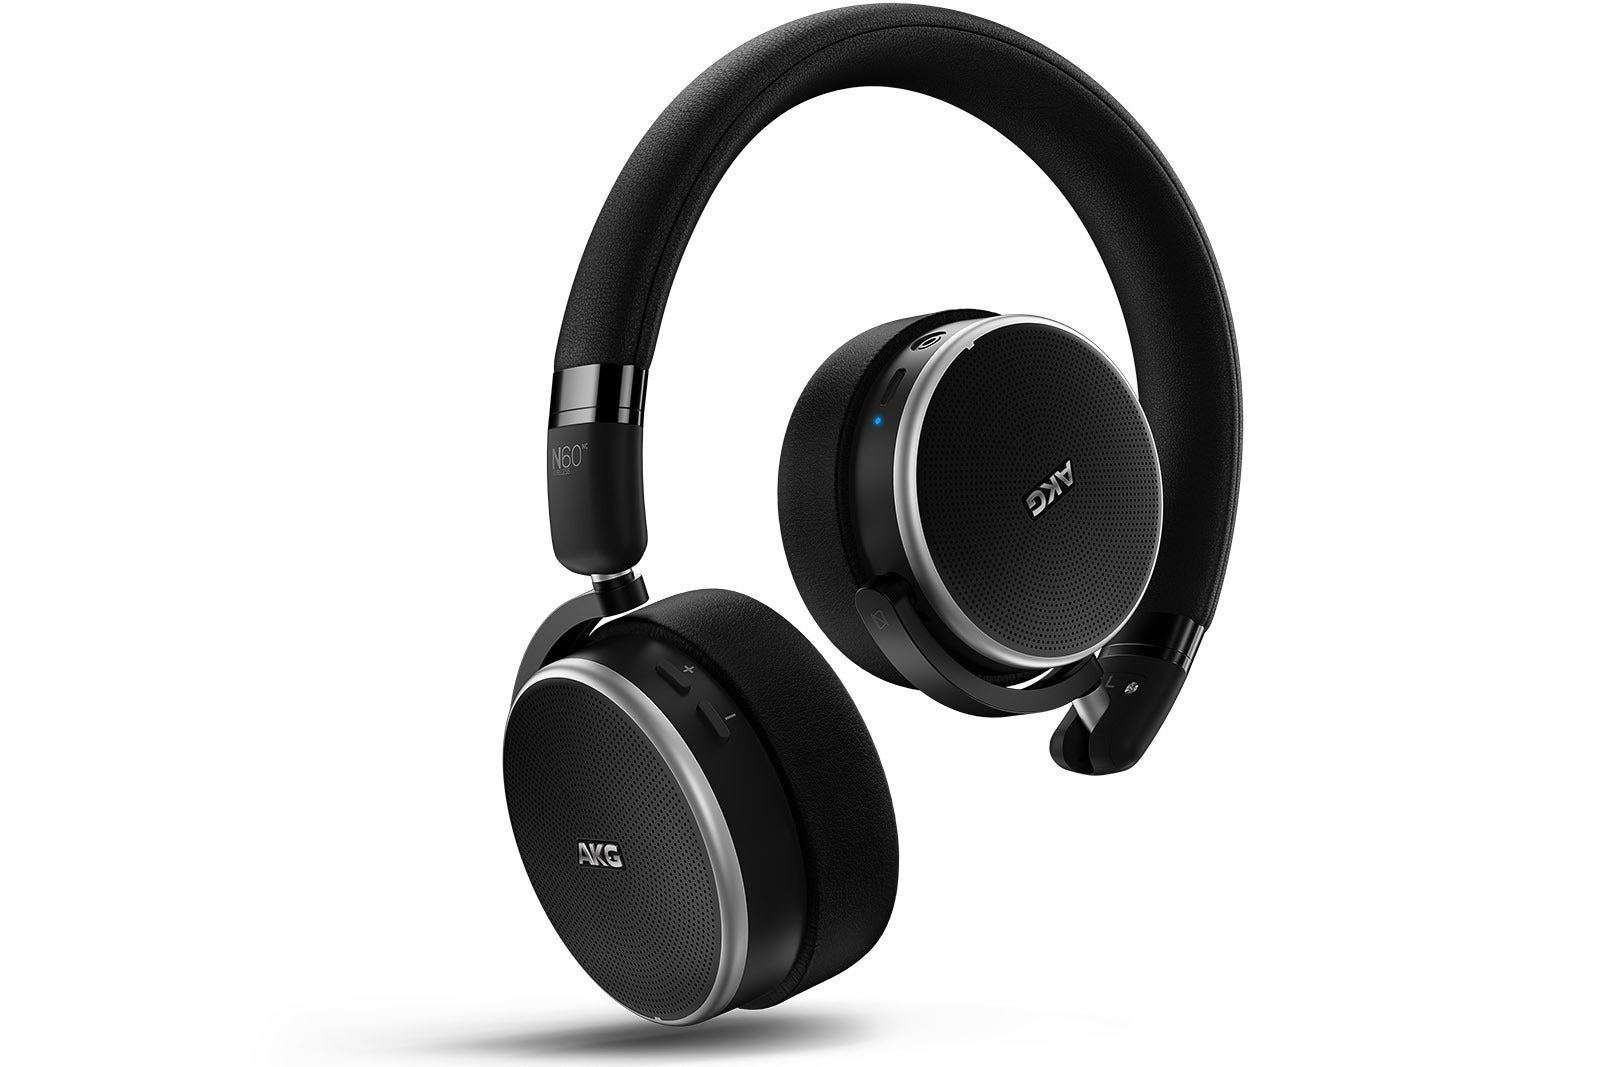 Akg N60nc Wireless Noise Cancelling Headphones Review They Cut The Home Images Headset Wiring Facebook Twitter Google Not Music Techhive